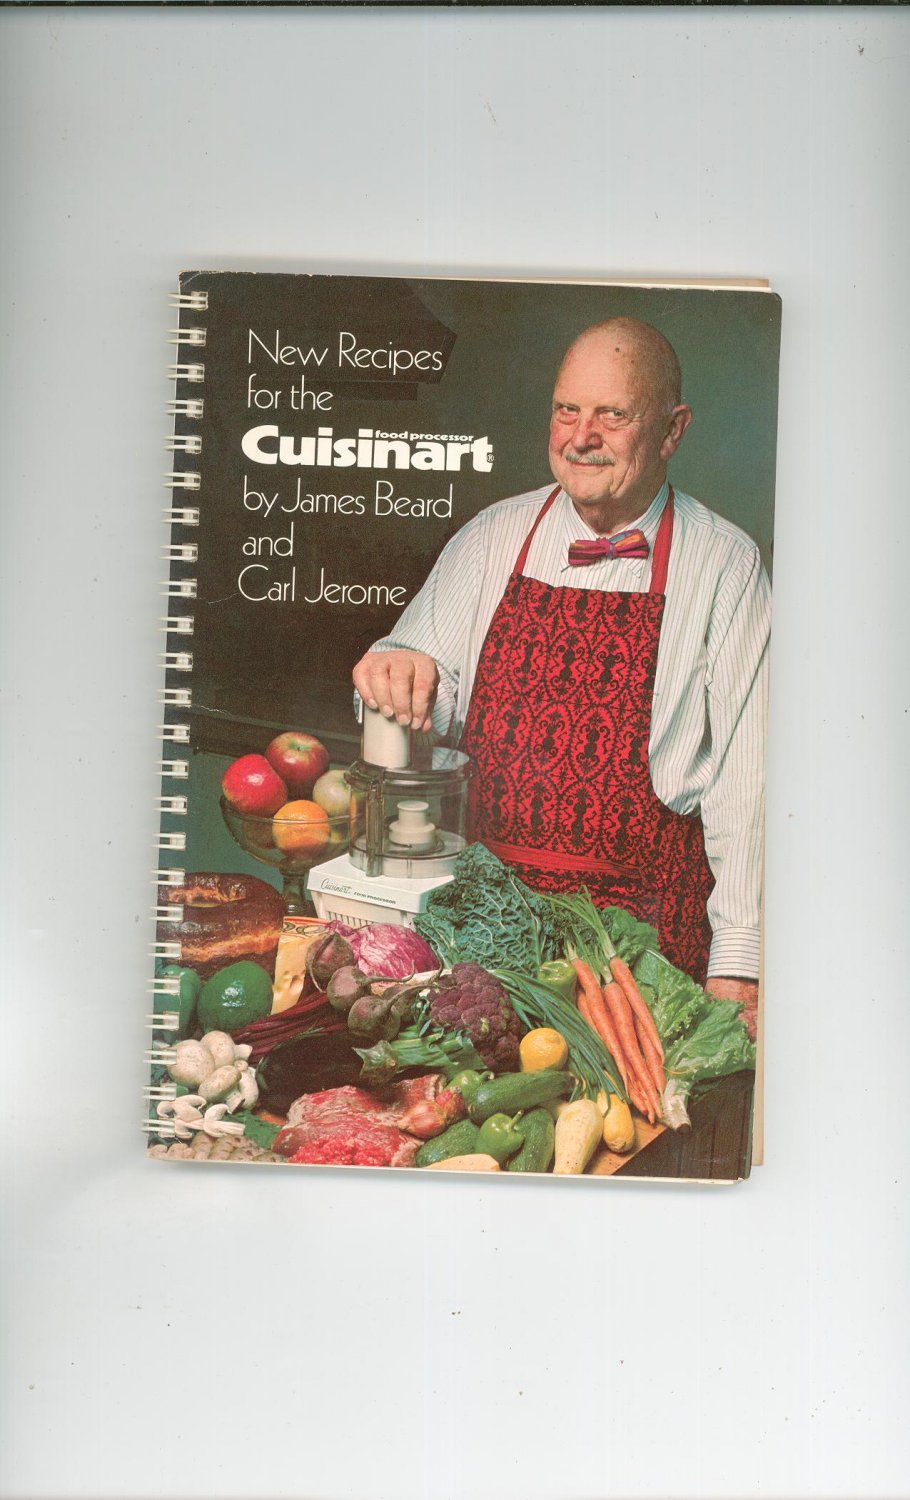 New Recipes for the Cuisinart Cookbook by James Beard & Carl Jerome 093666200x